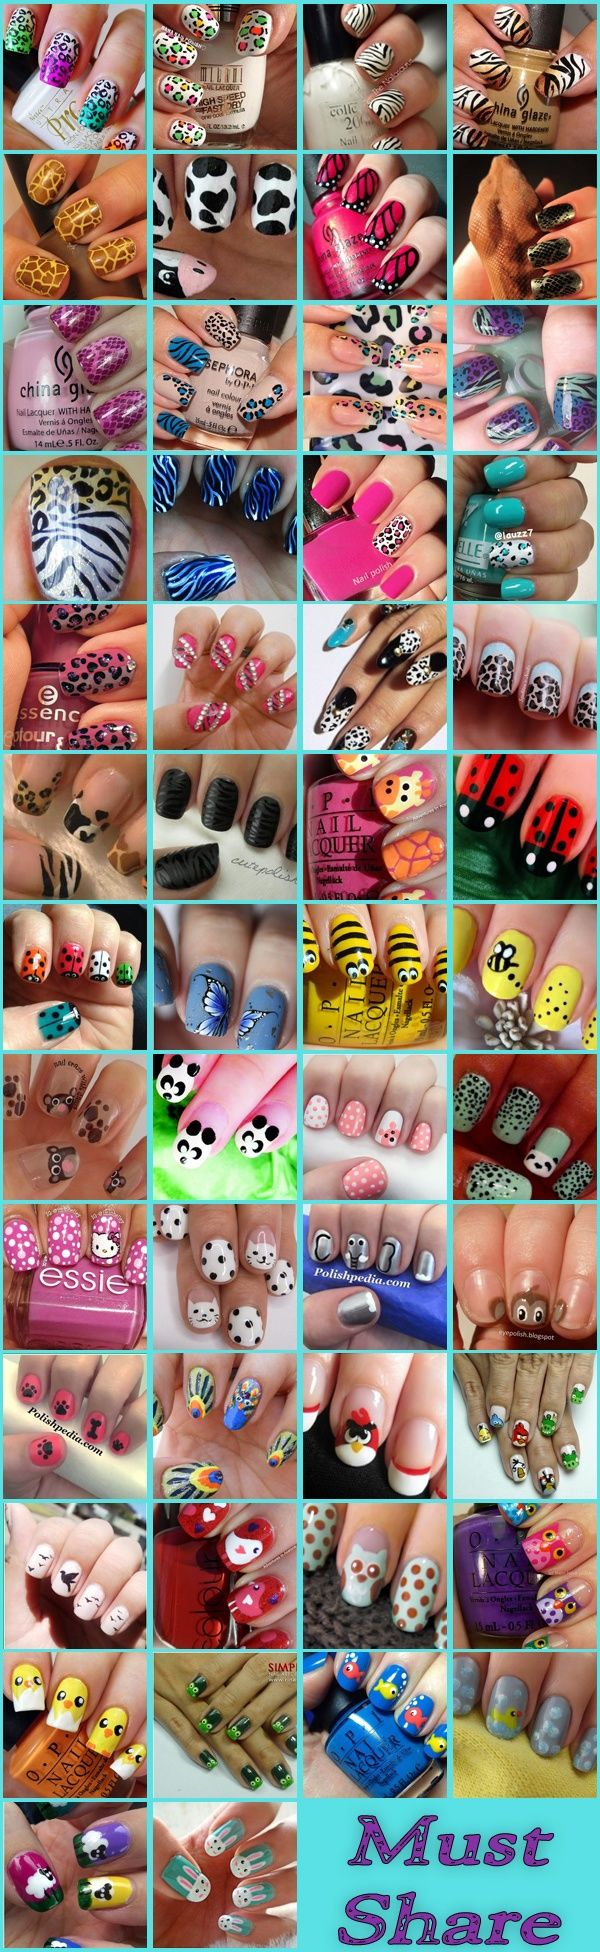 these are all different nail designs... GO AHEAD AND EXPLORE !!!!!!!!!!!!!!!!!!!!!!!! :)